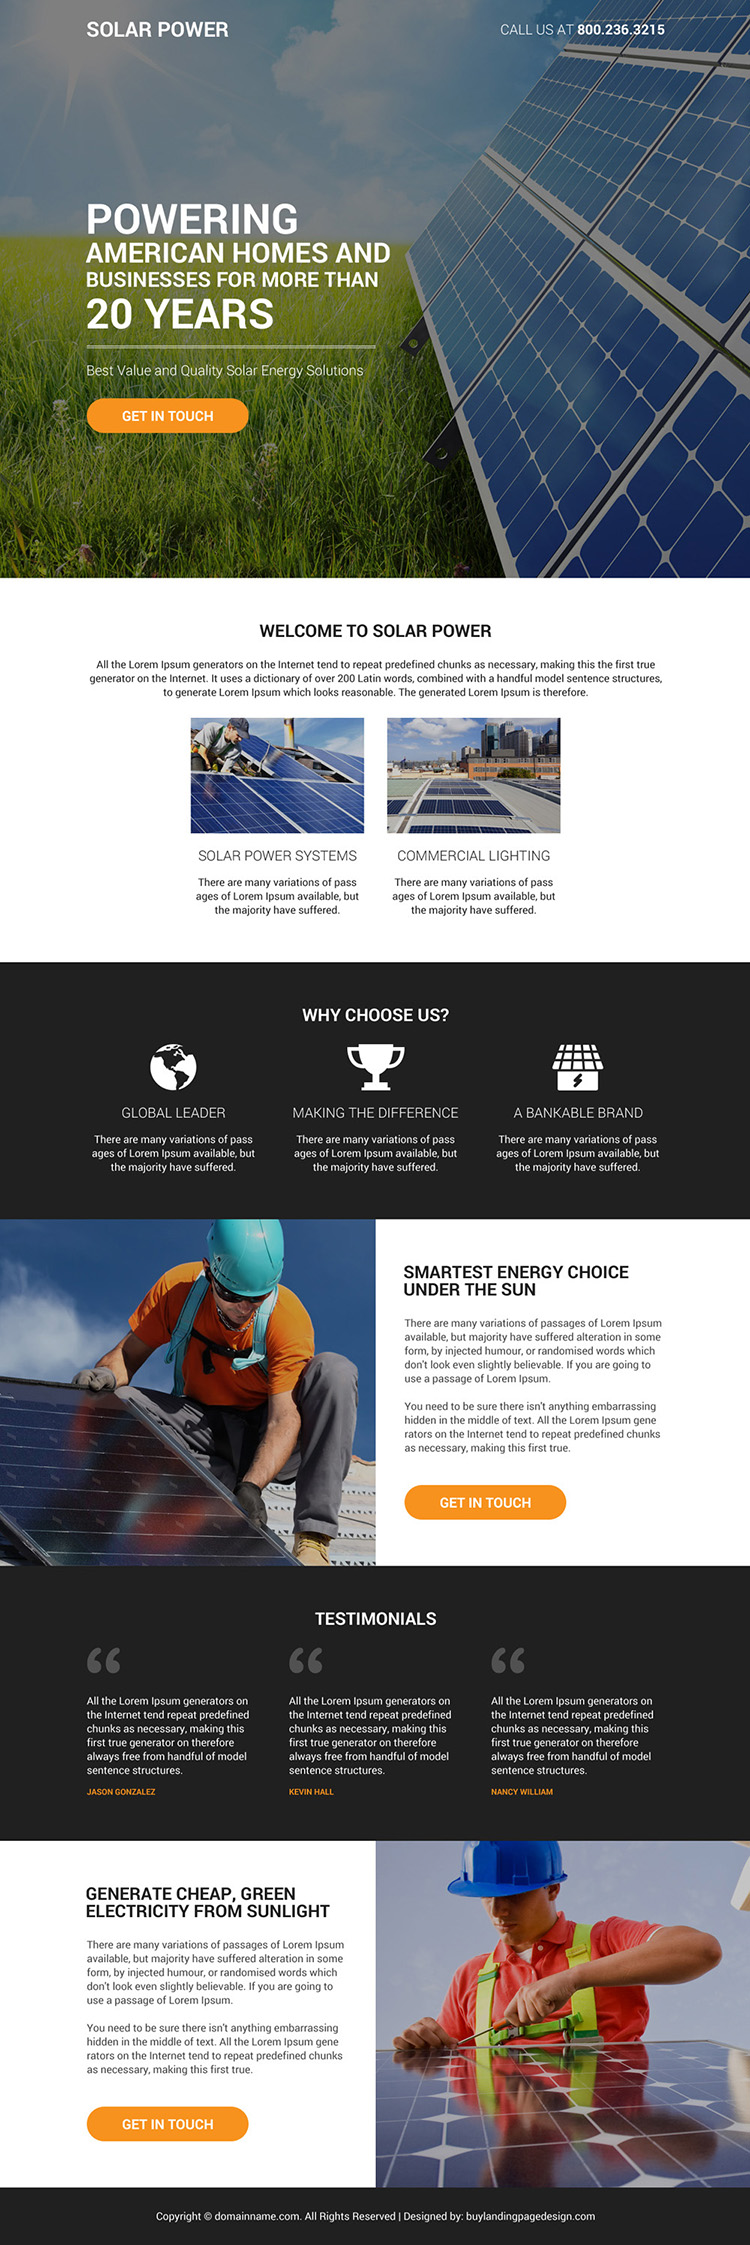 quality solar energy solutions bootstrap landing page design